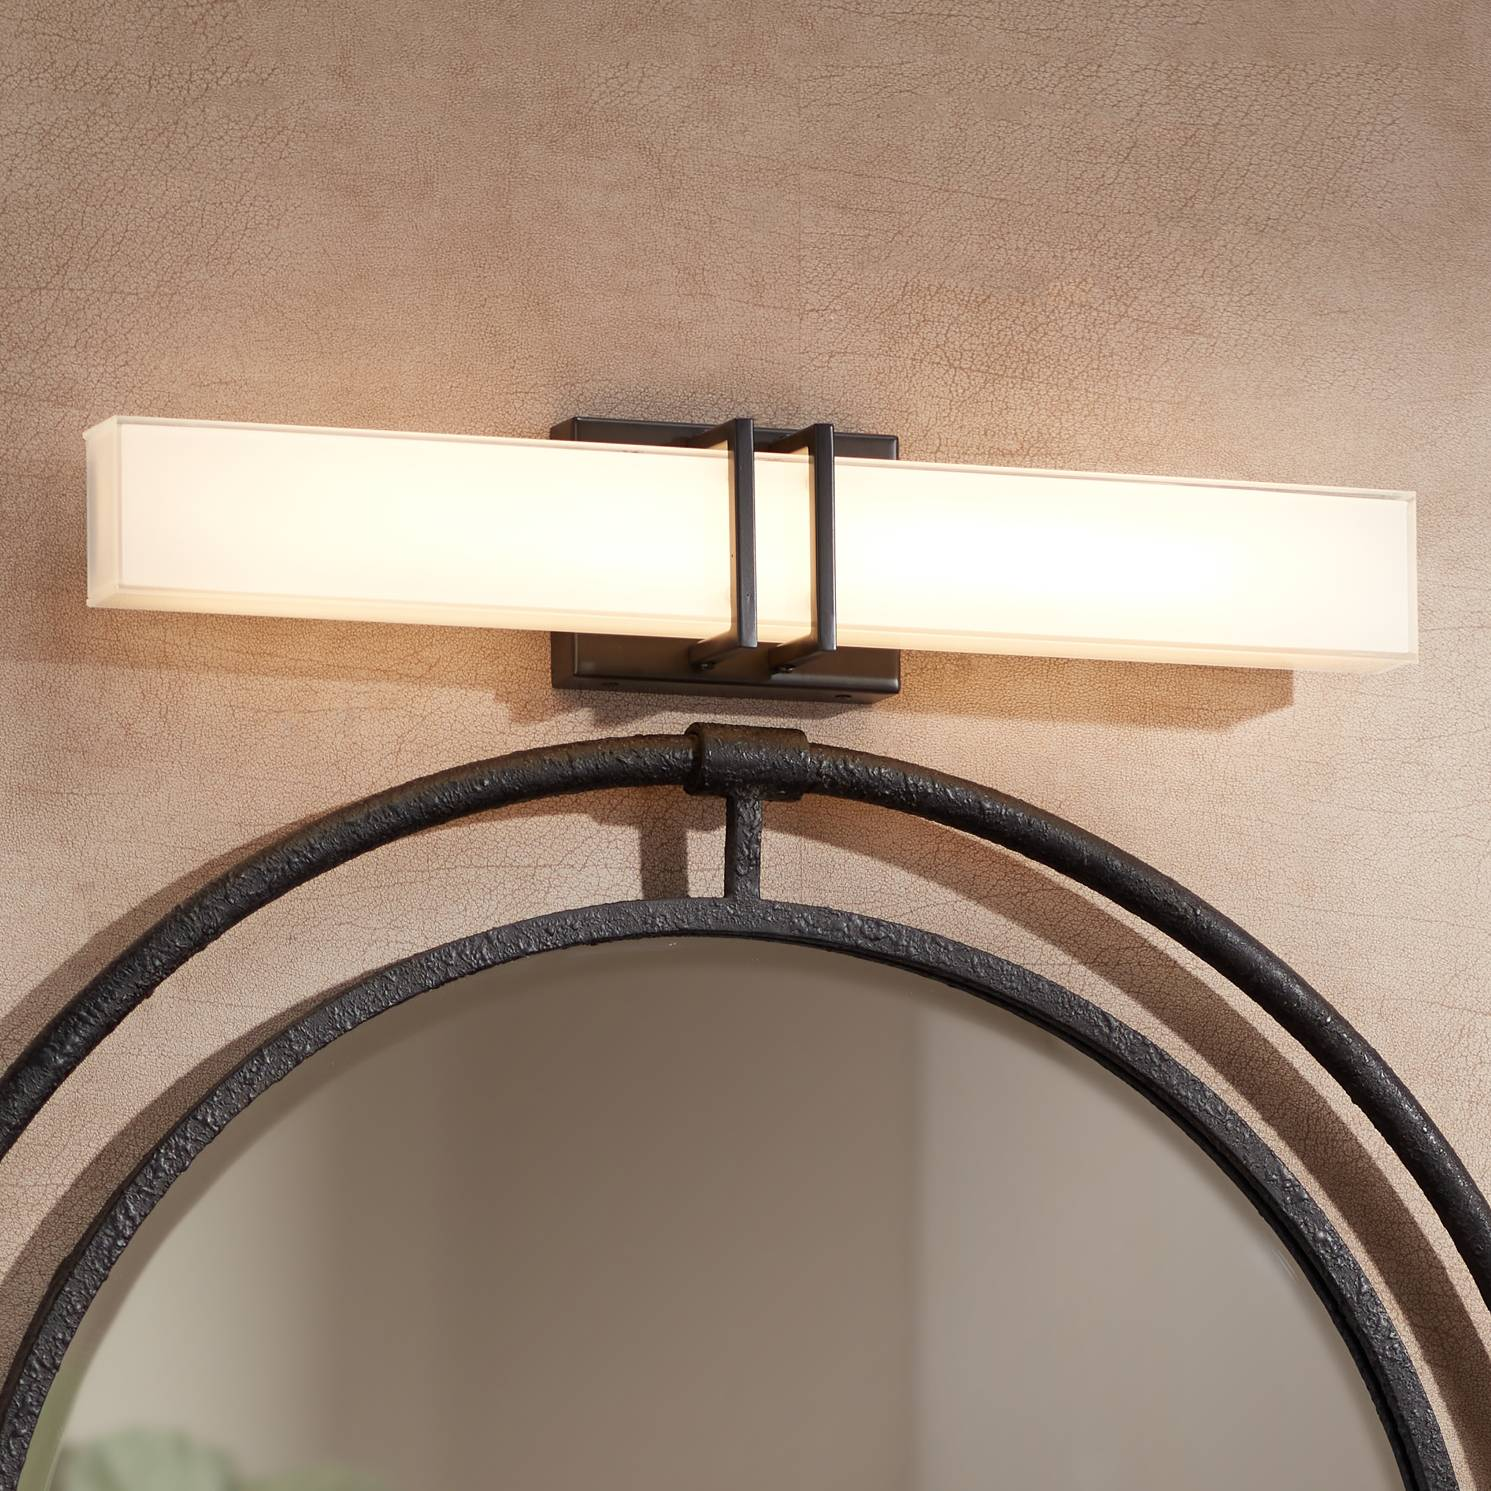 Details About Possini Euro Exeter 24 W Bronze Led Bathroom Vanity Light